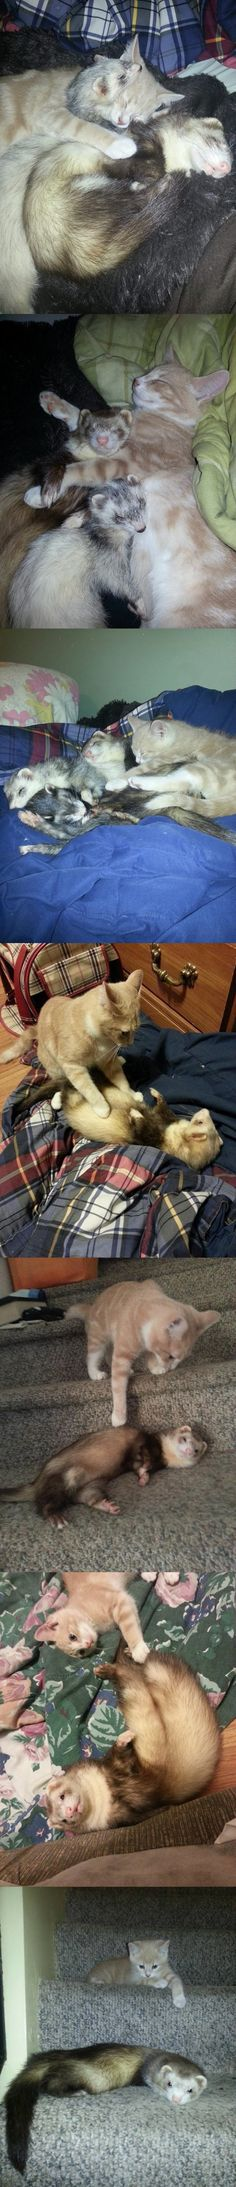 Kitten and Ferrets growing up together (part 2)